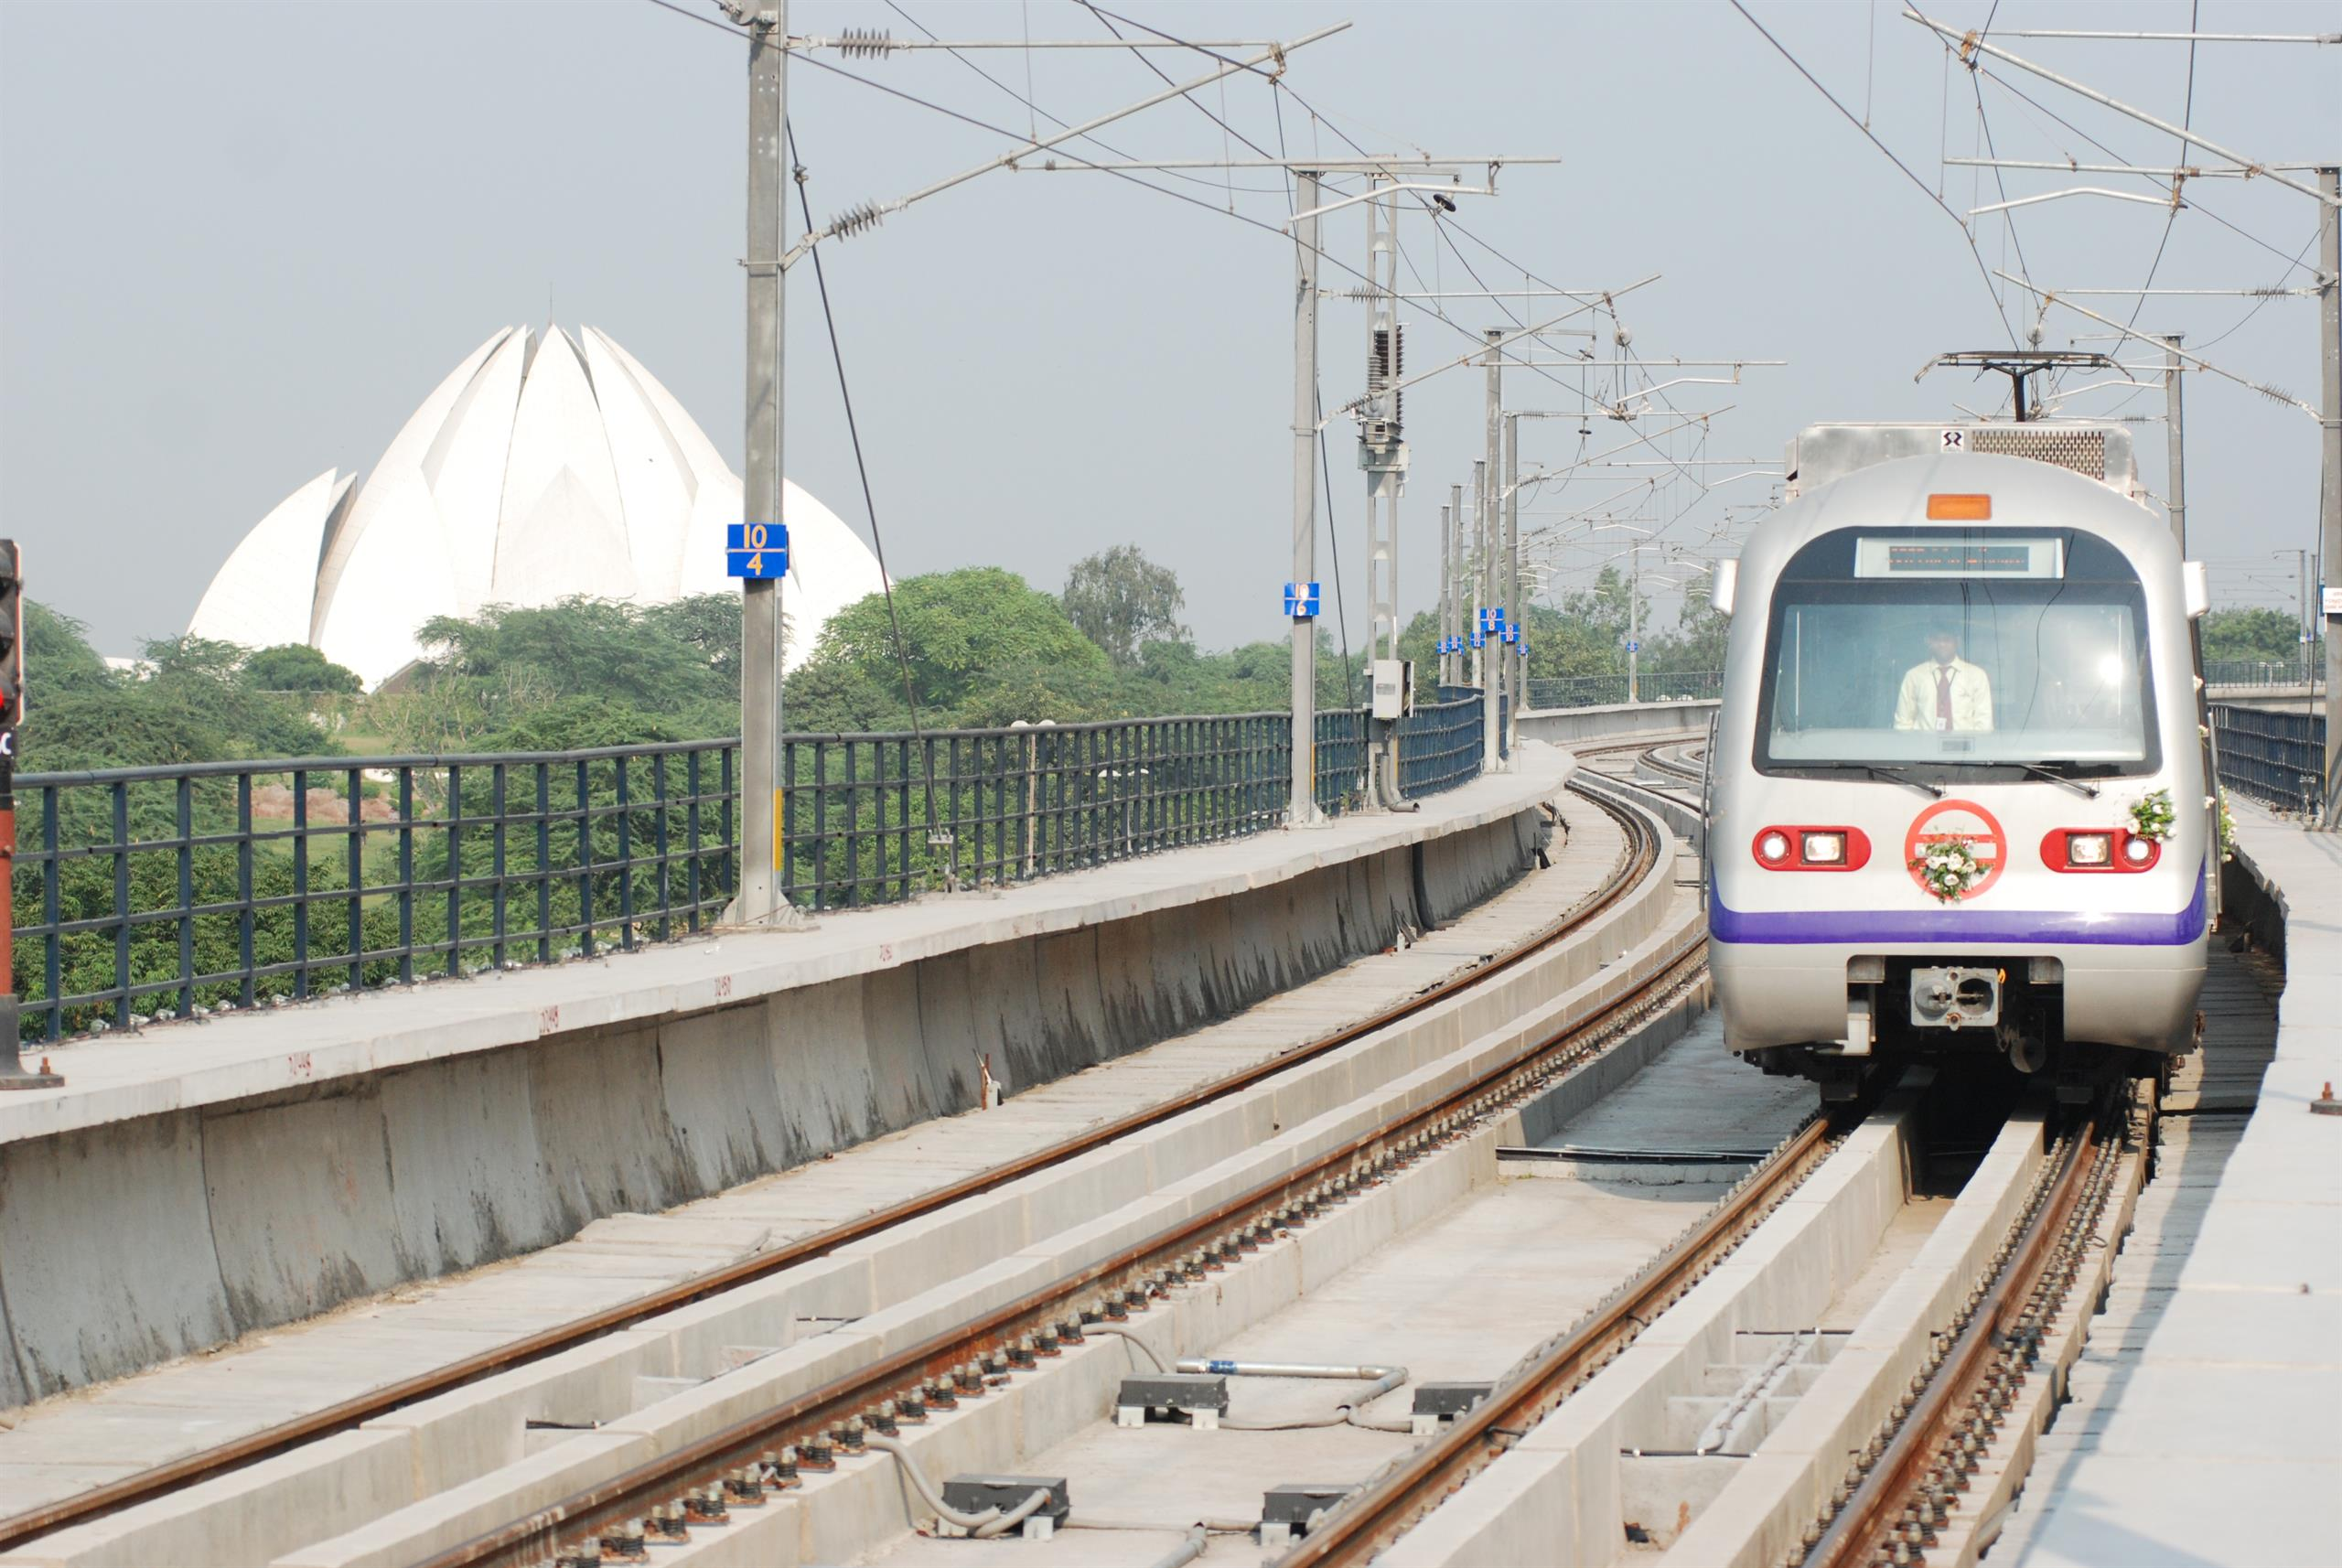 image of Delhi metro train, front-on view